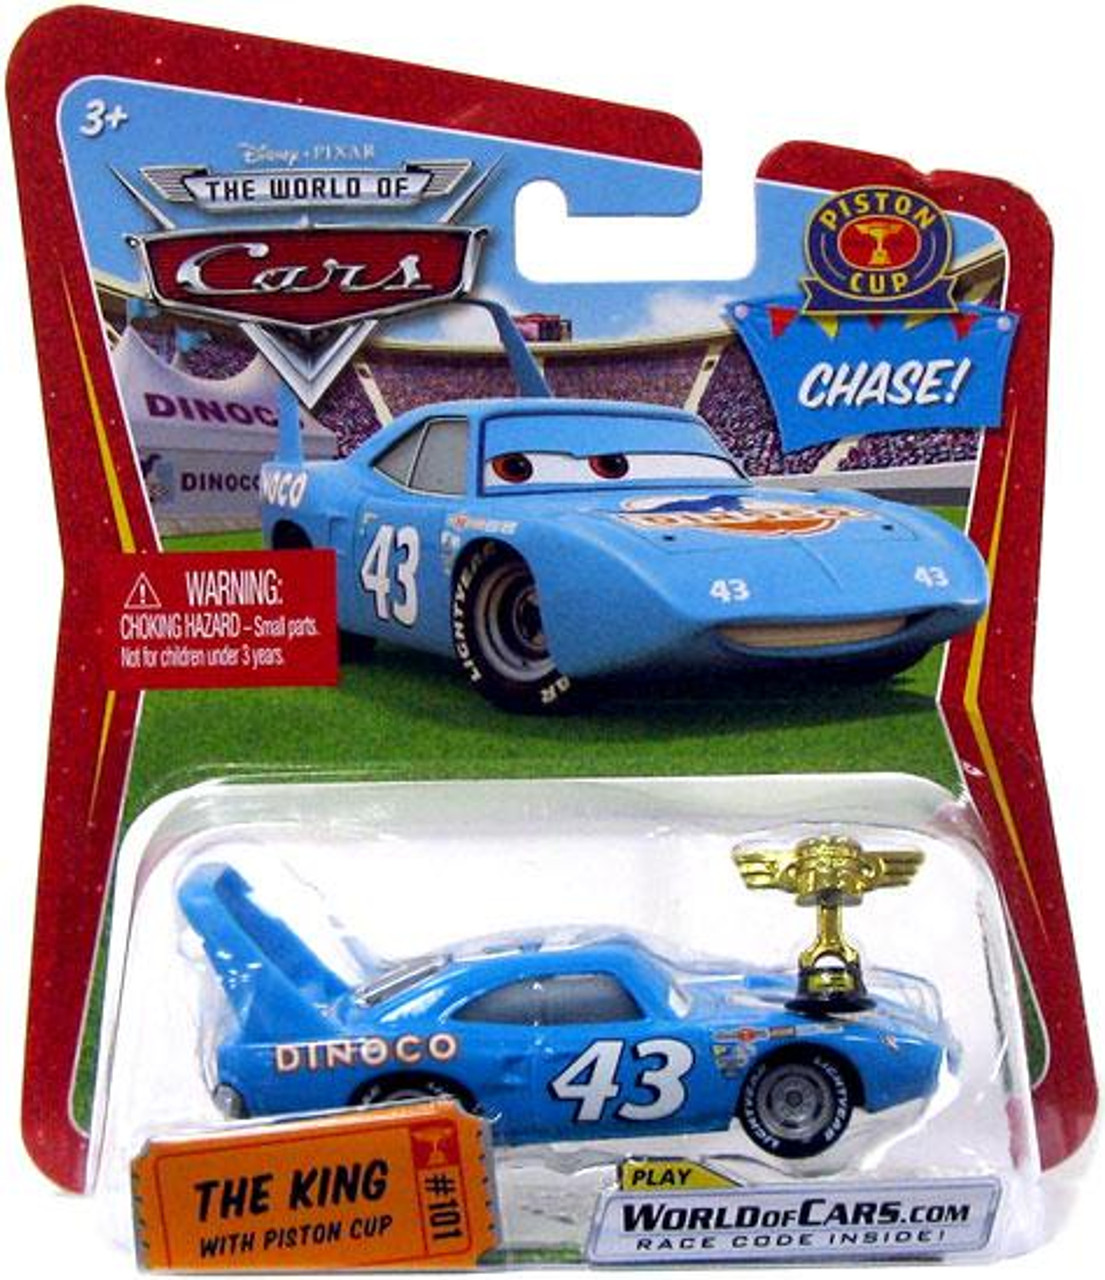 Disney Cars The World of Cars The King with Piston Cup Trophy Diecast Car